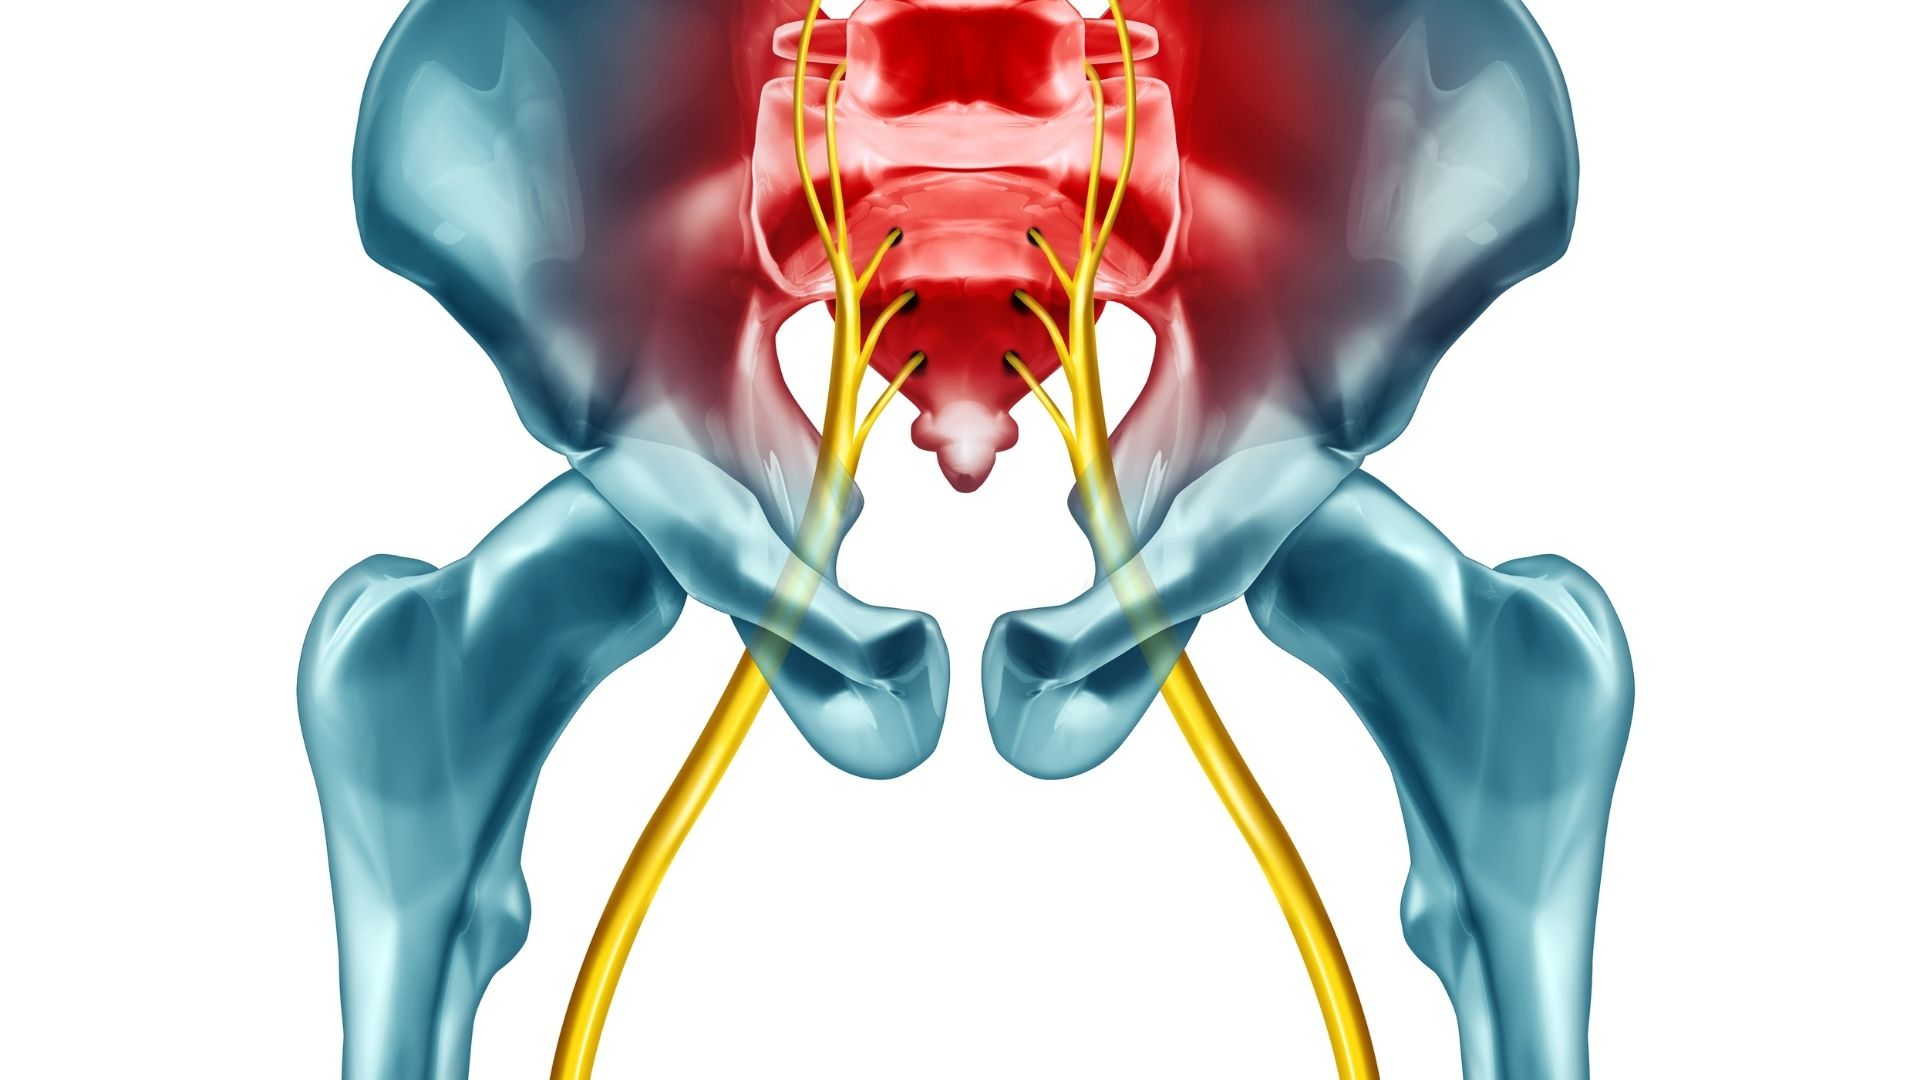 Sciatic Pain: How to Find Relief